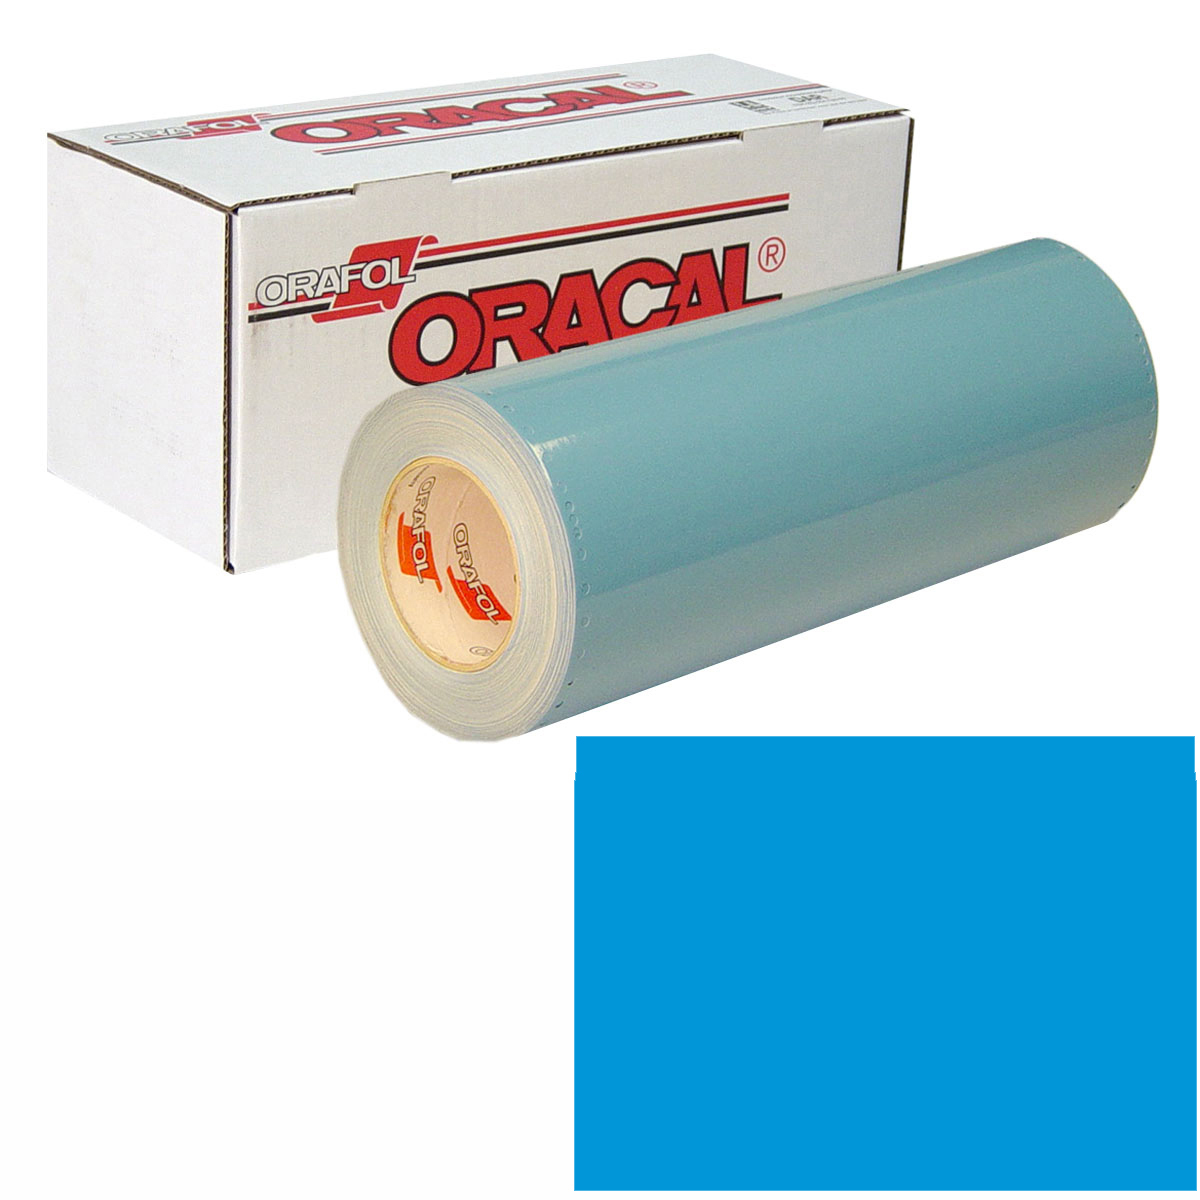 ORACAL 751 30in X 50yd 052 Azure Blue